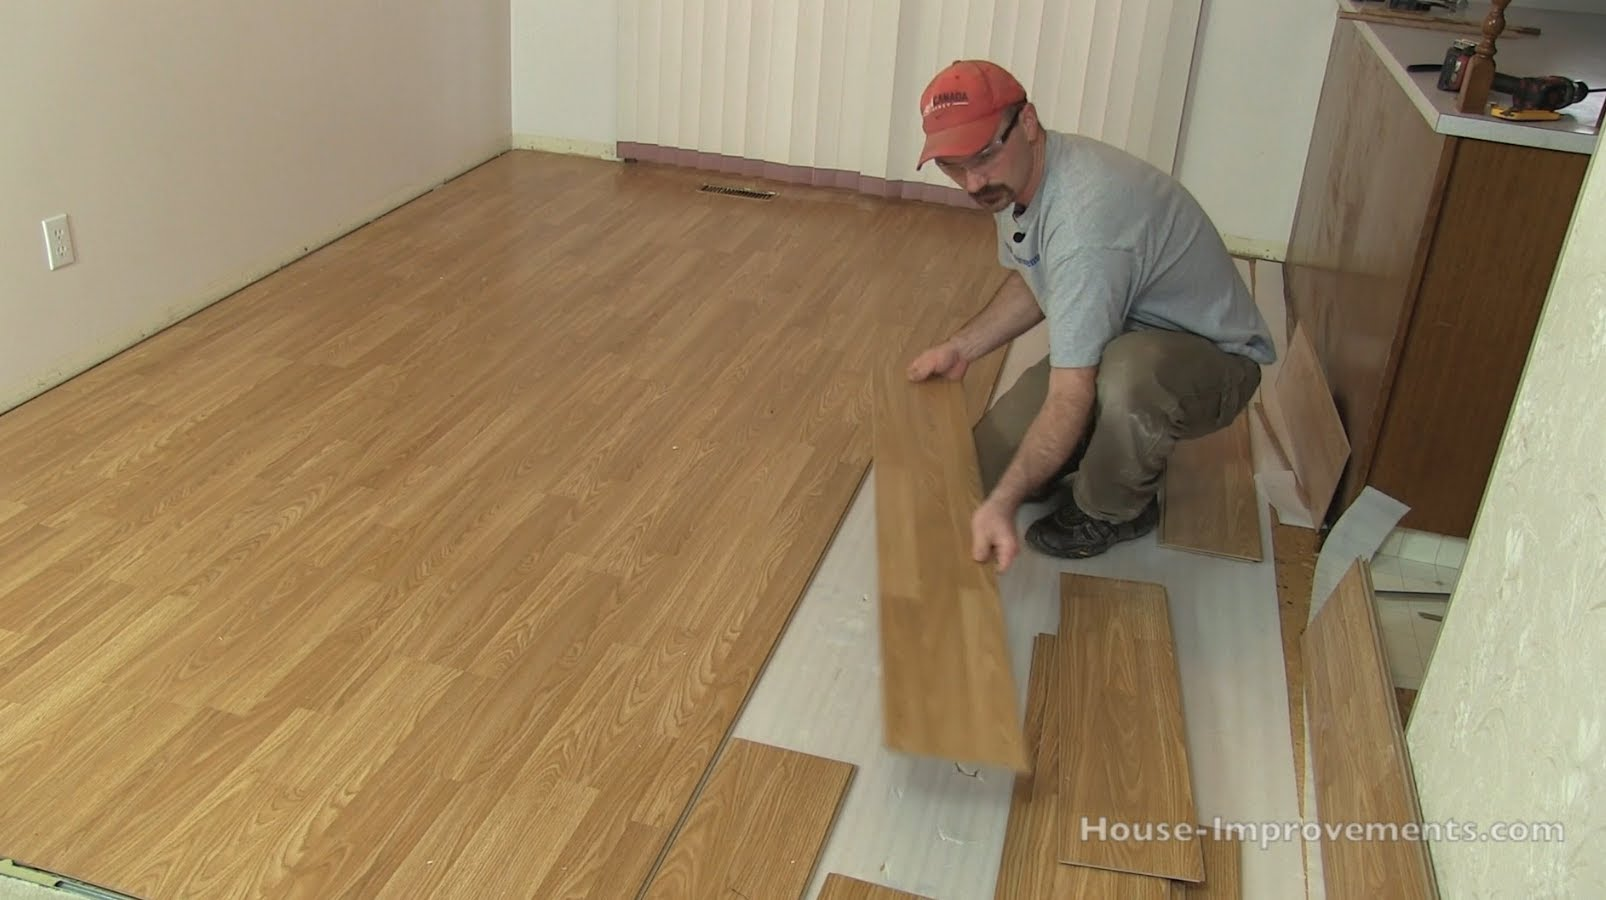 How to remove laminate flooring february 2018 toolversed dailygadgetfo Gallery